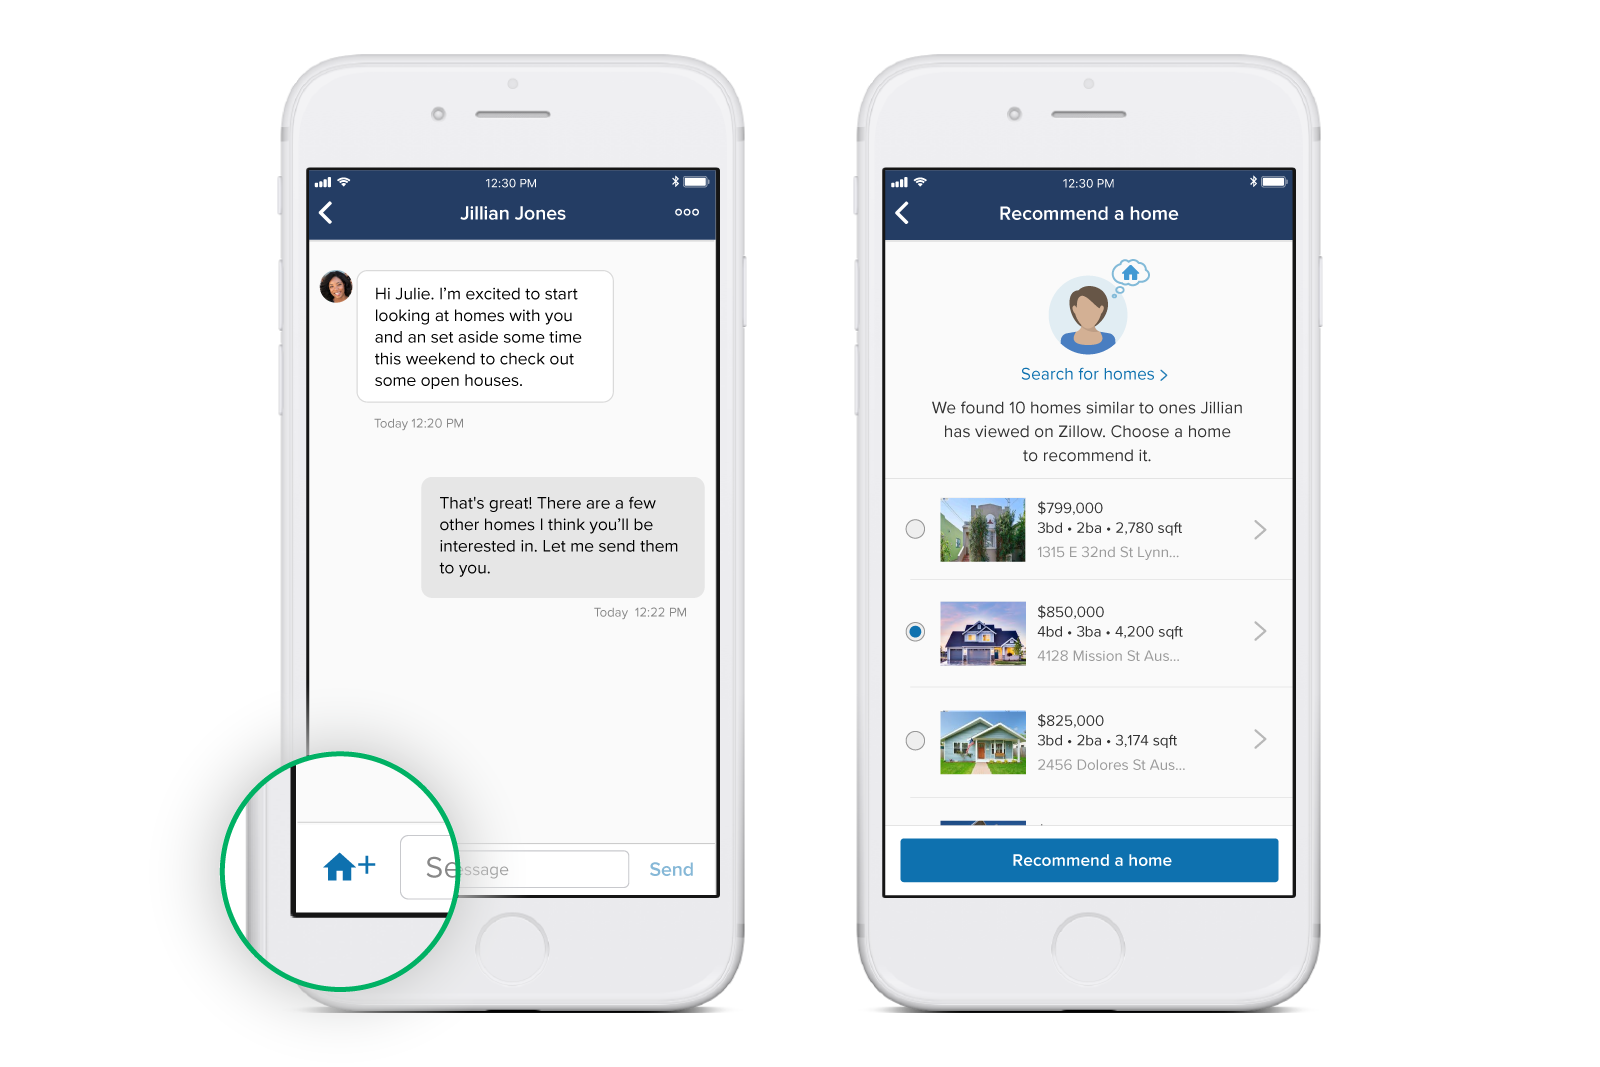 What's New With the Premier Agent App This Fall | Zillow ... on zillow foreclosures, zillow find neighborhood, property search, realtor home search, zillow apartments, zillow real estate search, google home search, zillow maps, zillow real estate value, zillow rentals, zillow zestimates, zillow search neighborhood, home by address search, zillow aerial search, zillow bird eye, zillow real estate homes, zillow logo vector, mls home search, zillow illinois, zillow real estate trulia,